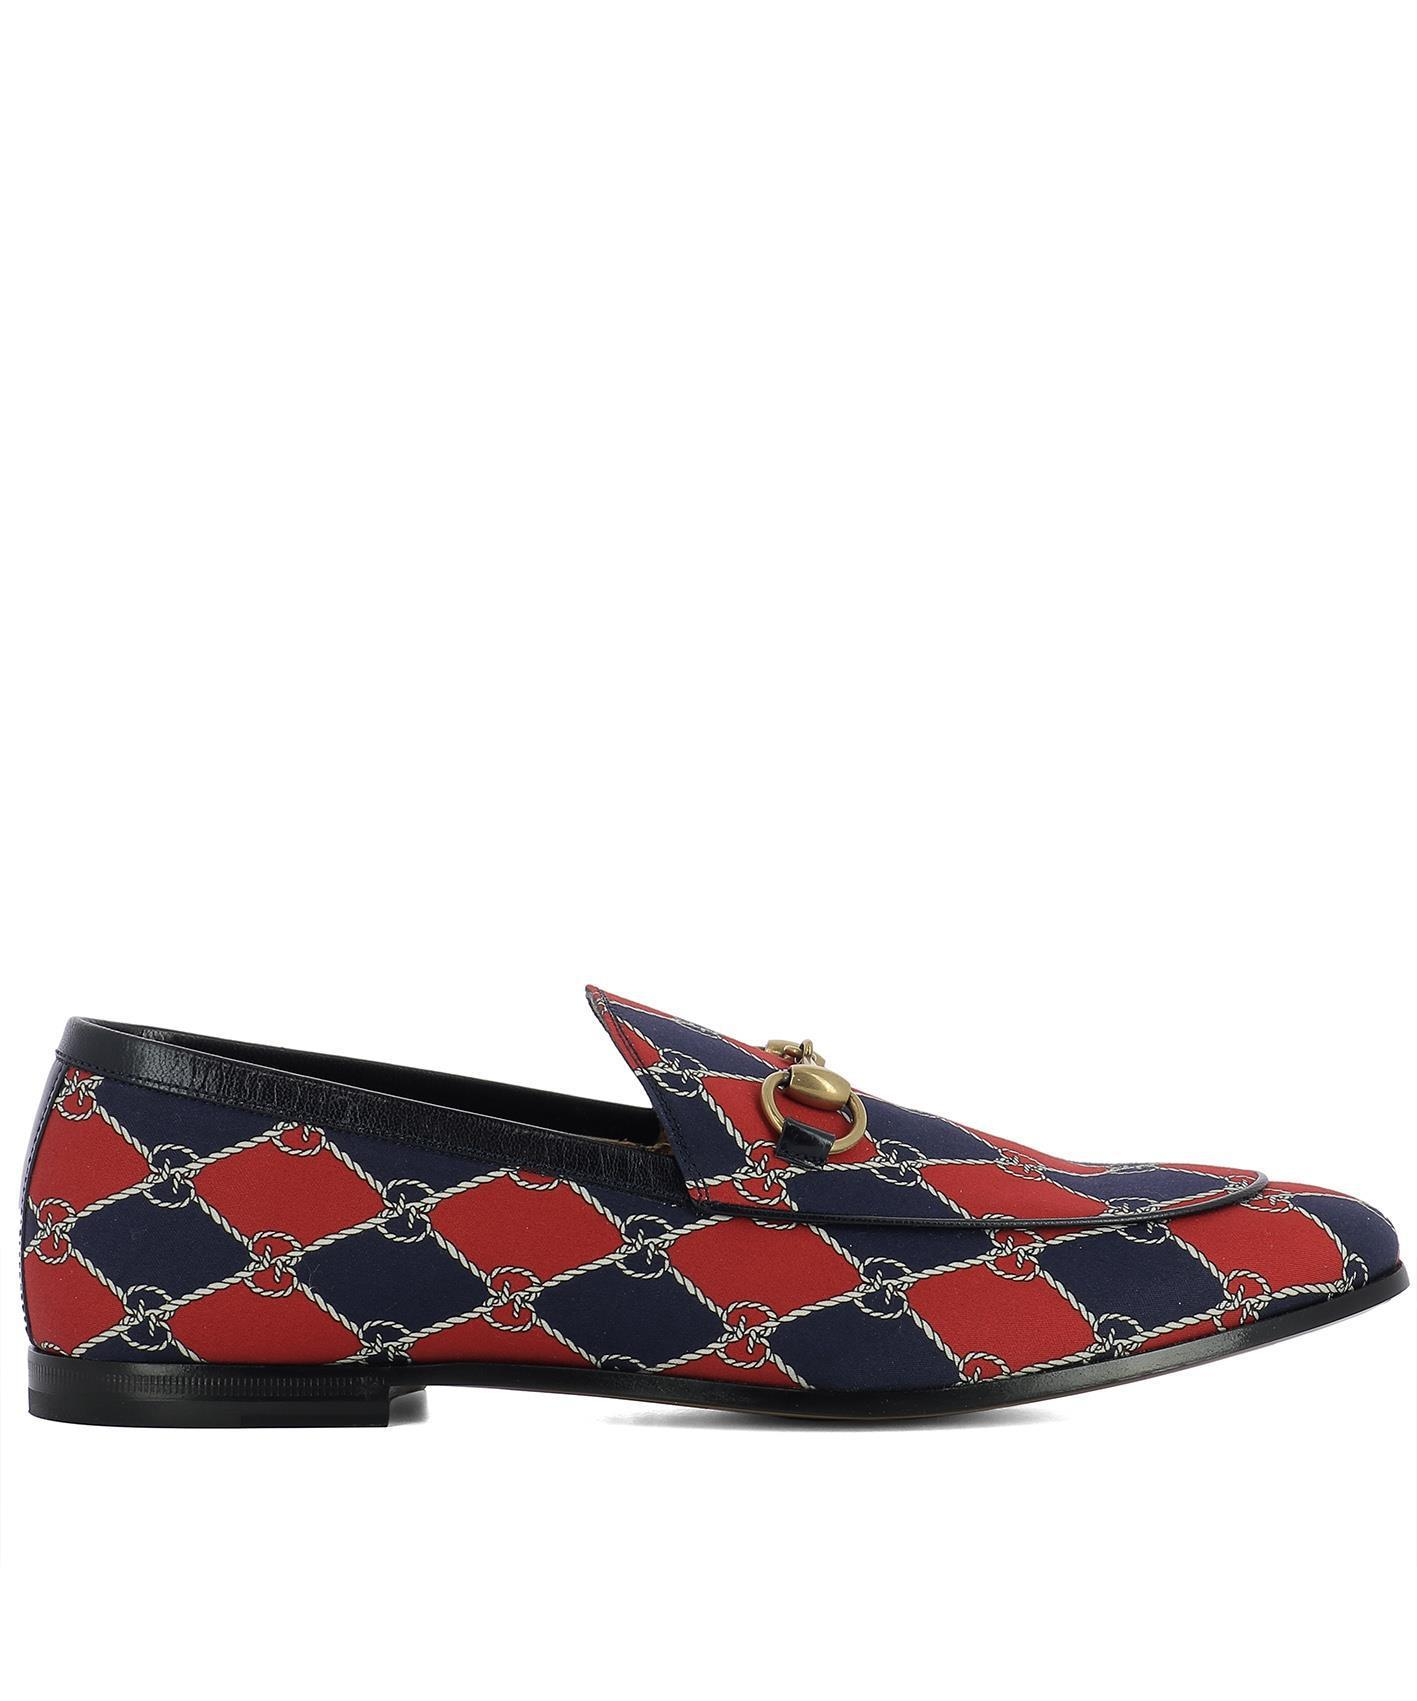 2a0cc4f8c79 Lyst - Gucci Rhombus Loafers in Blue for Men